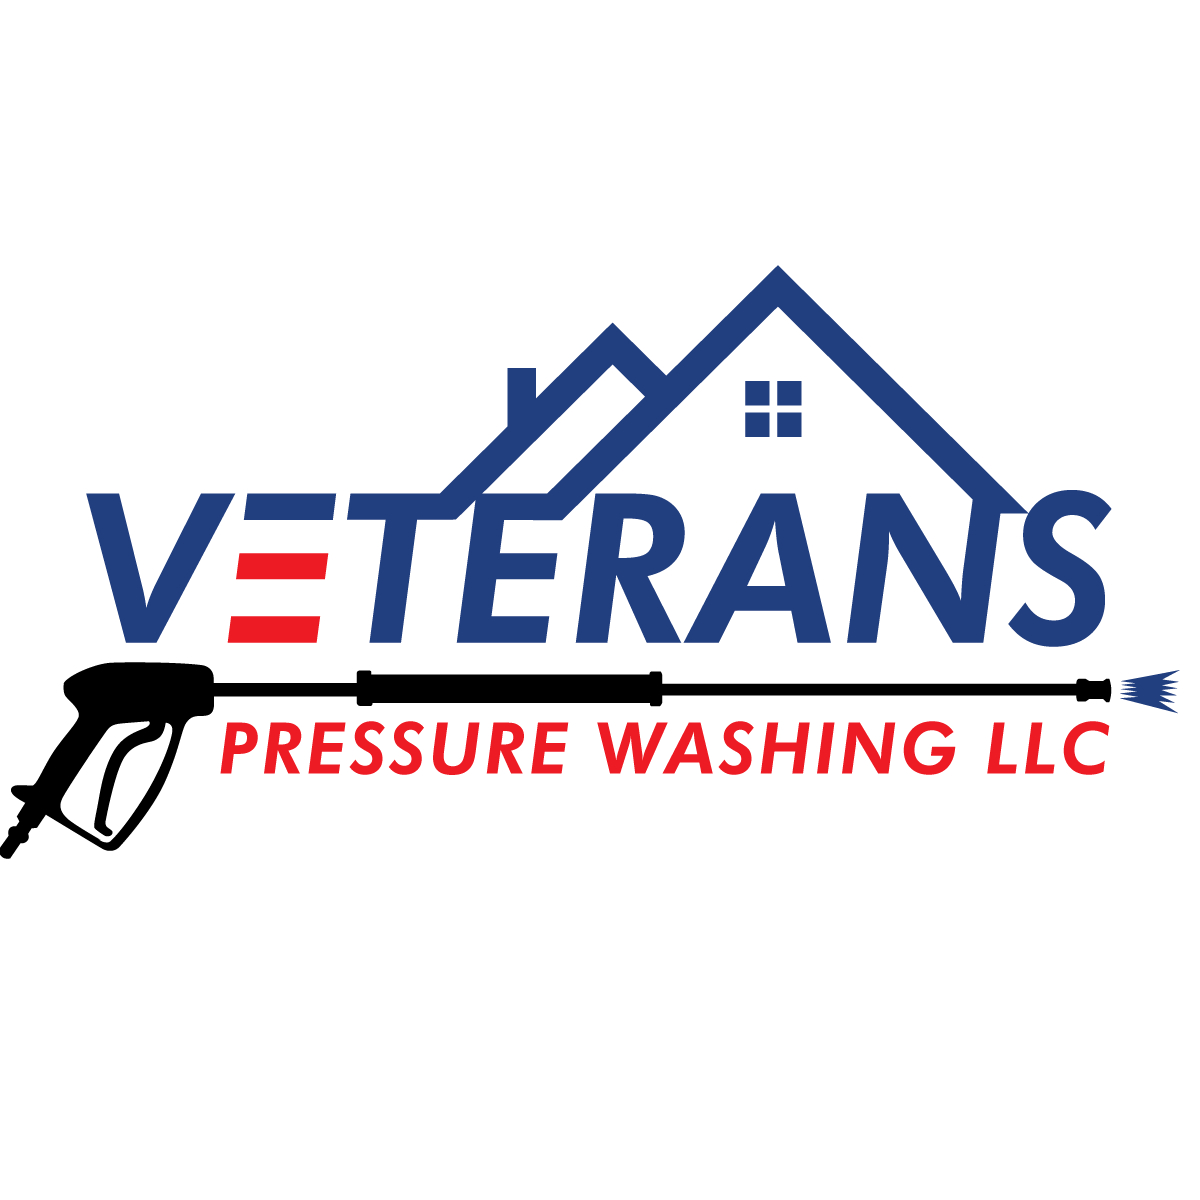 Veterans Pressure Washing LLC